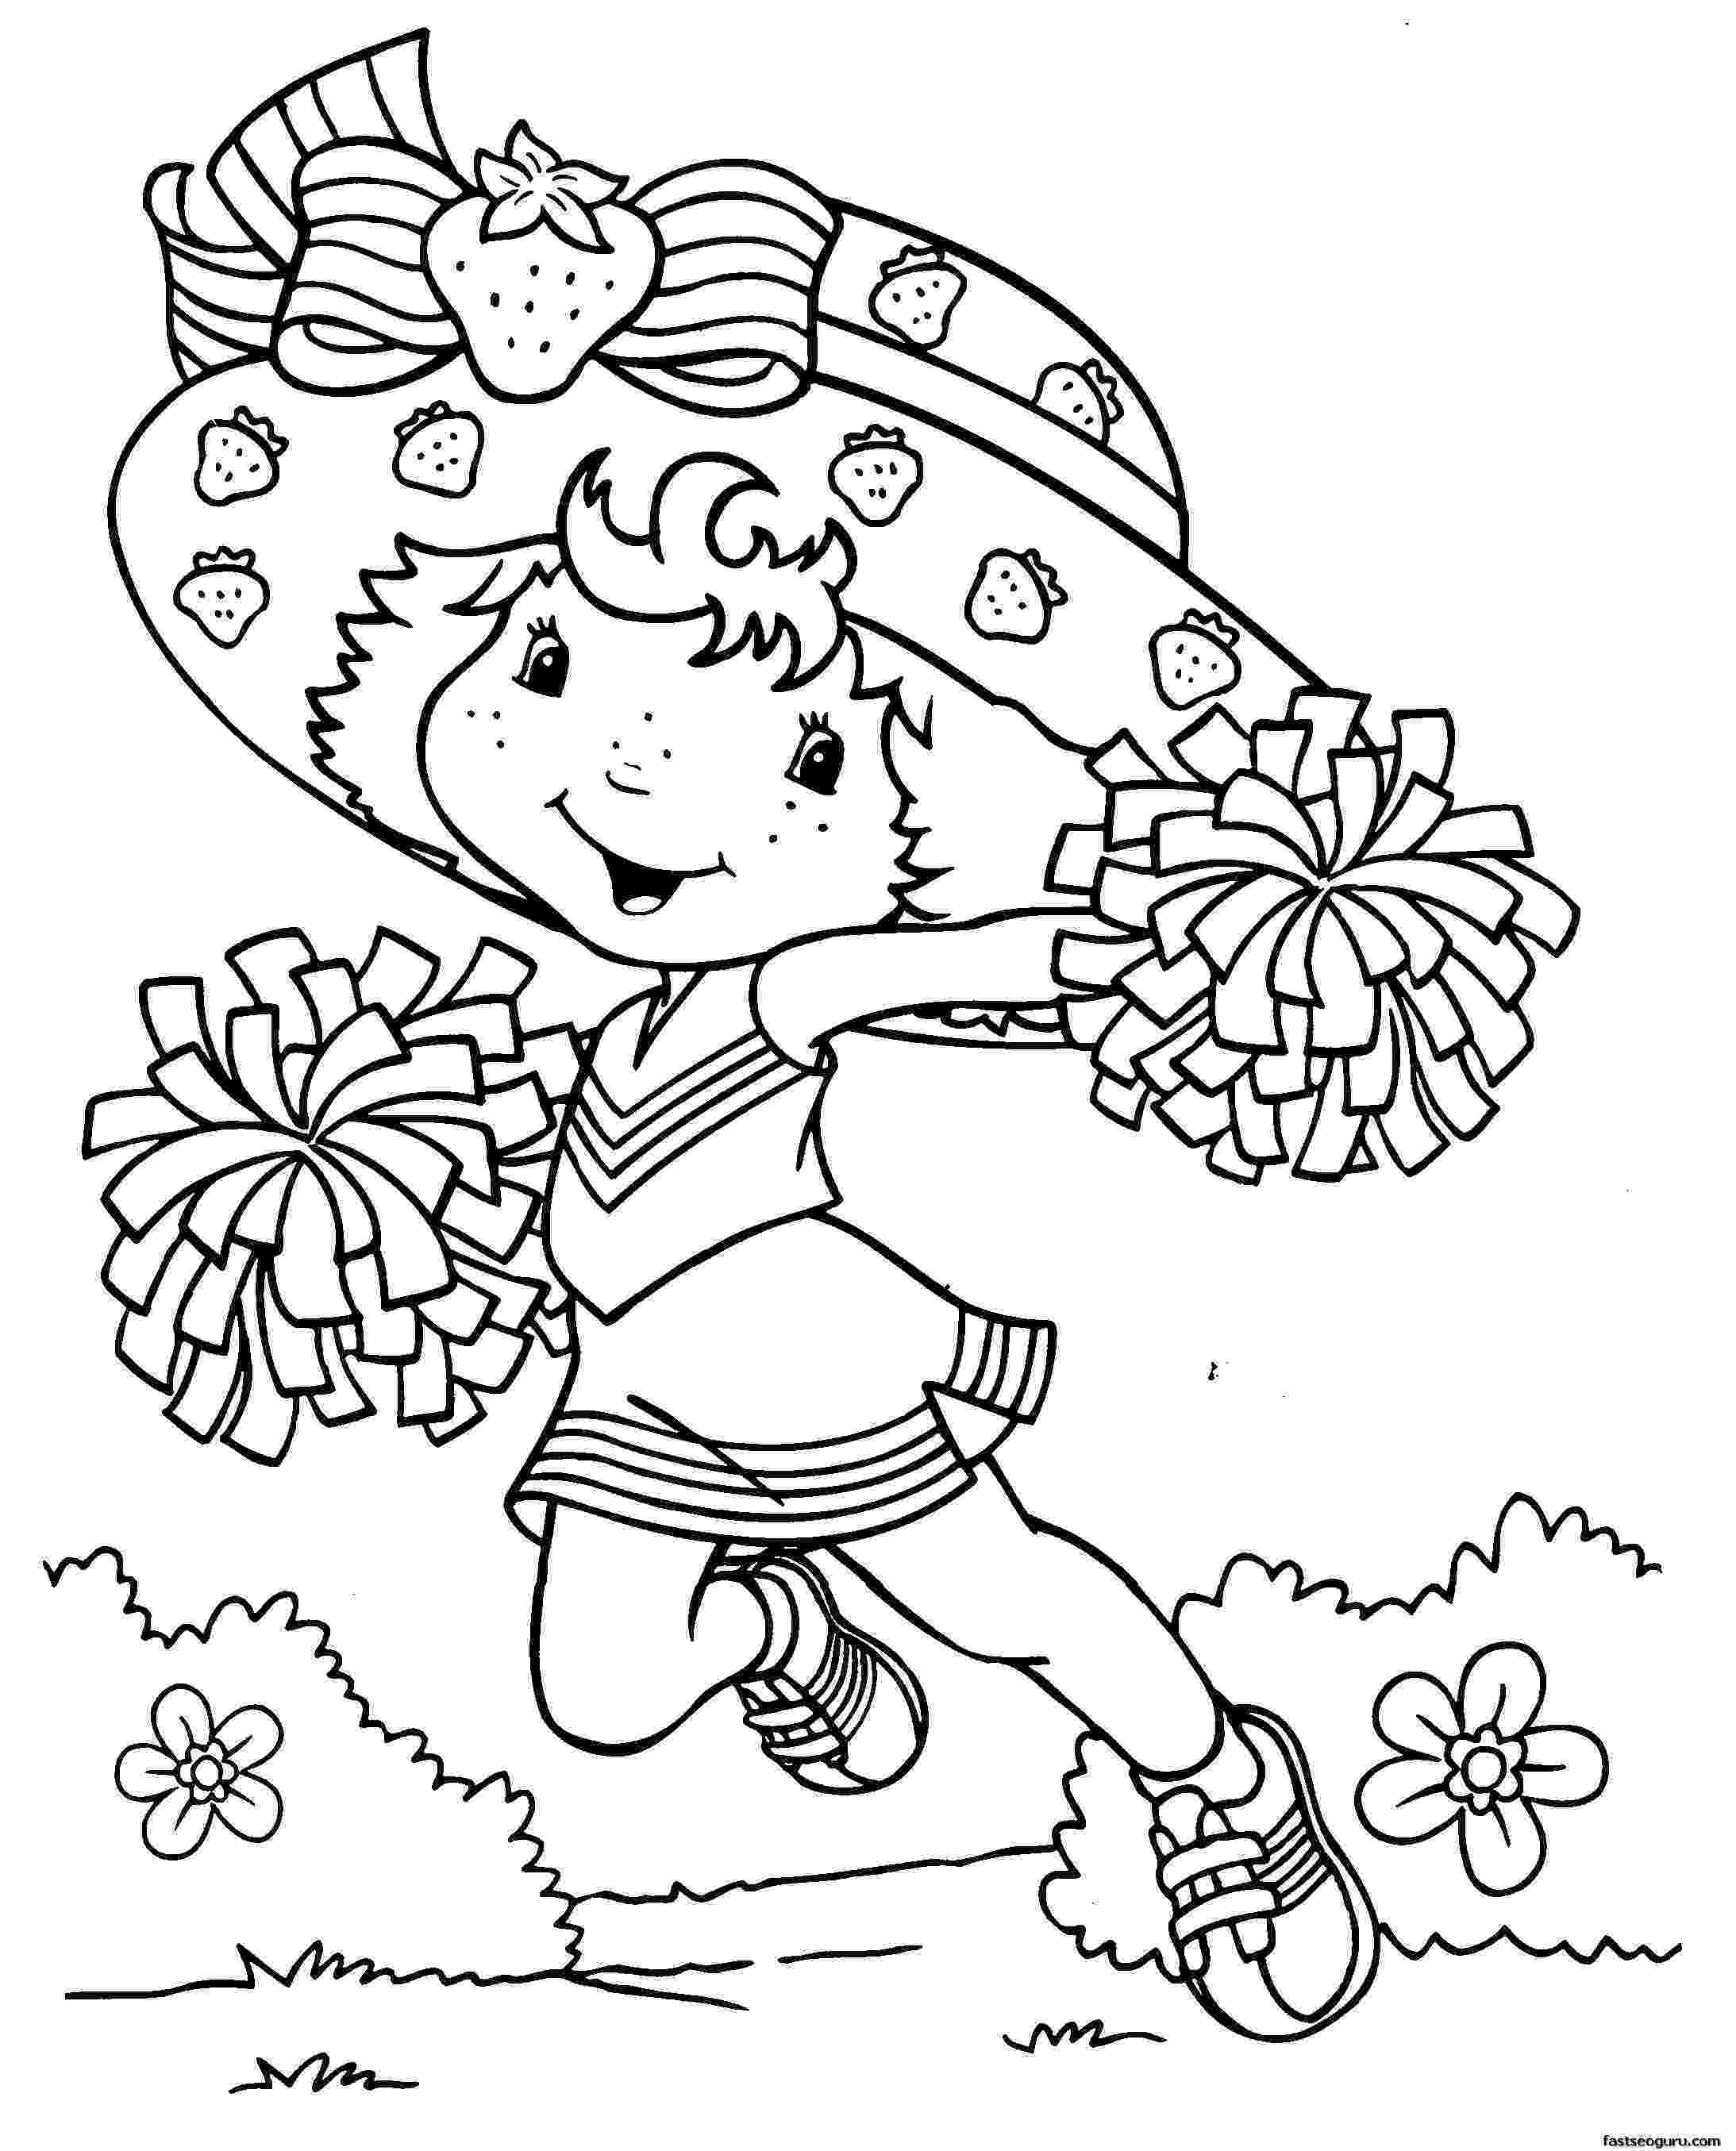 colouring pages to print for girls free printable hello kitty coloring pages for kids hello pages girls colouring for to print